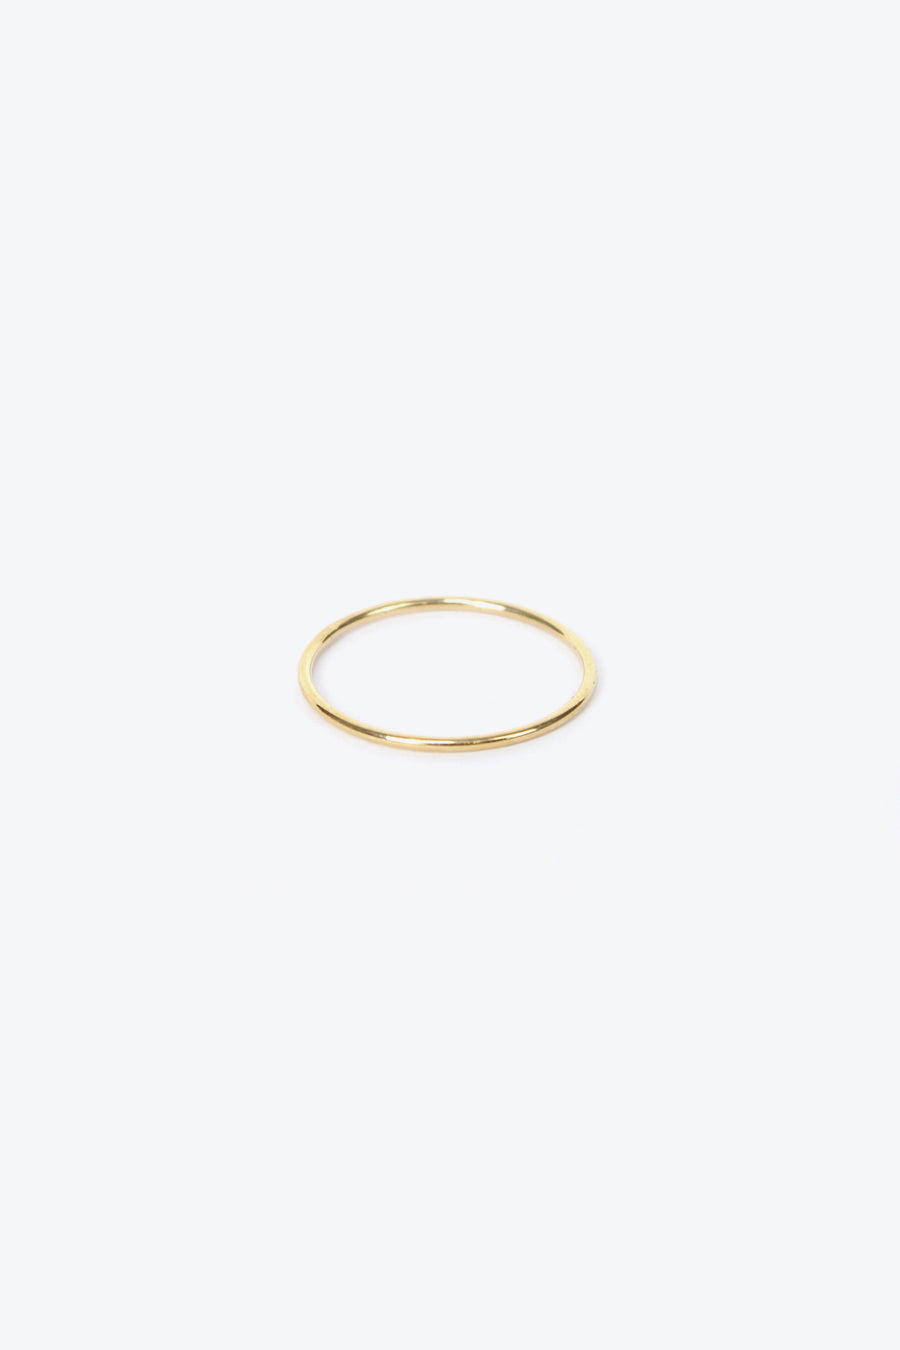 SUBTLE BAND RING US3.5 / 14K YELLOW GOLD